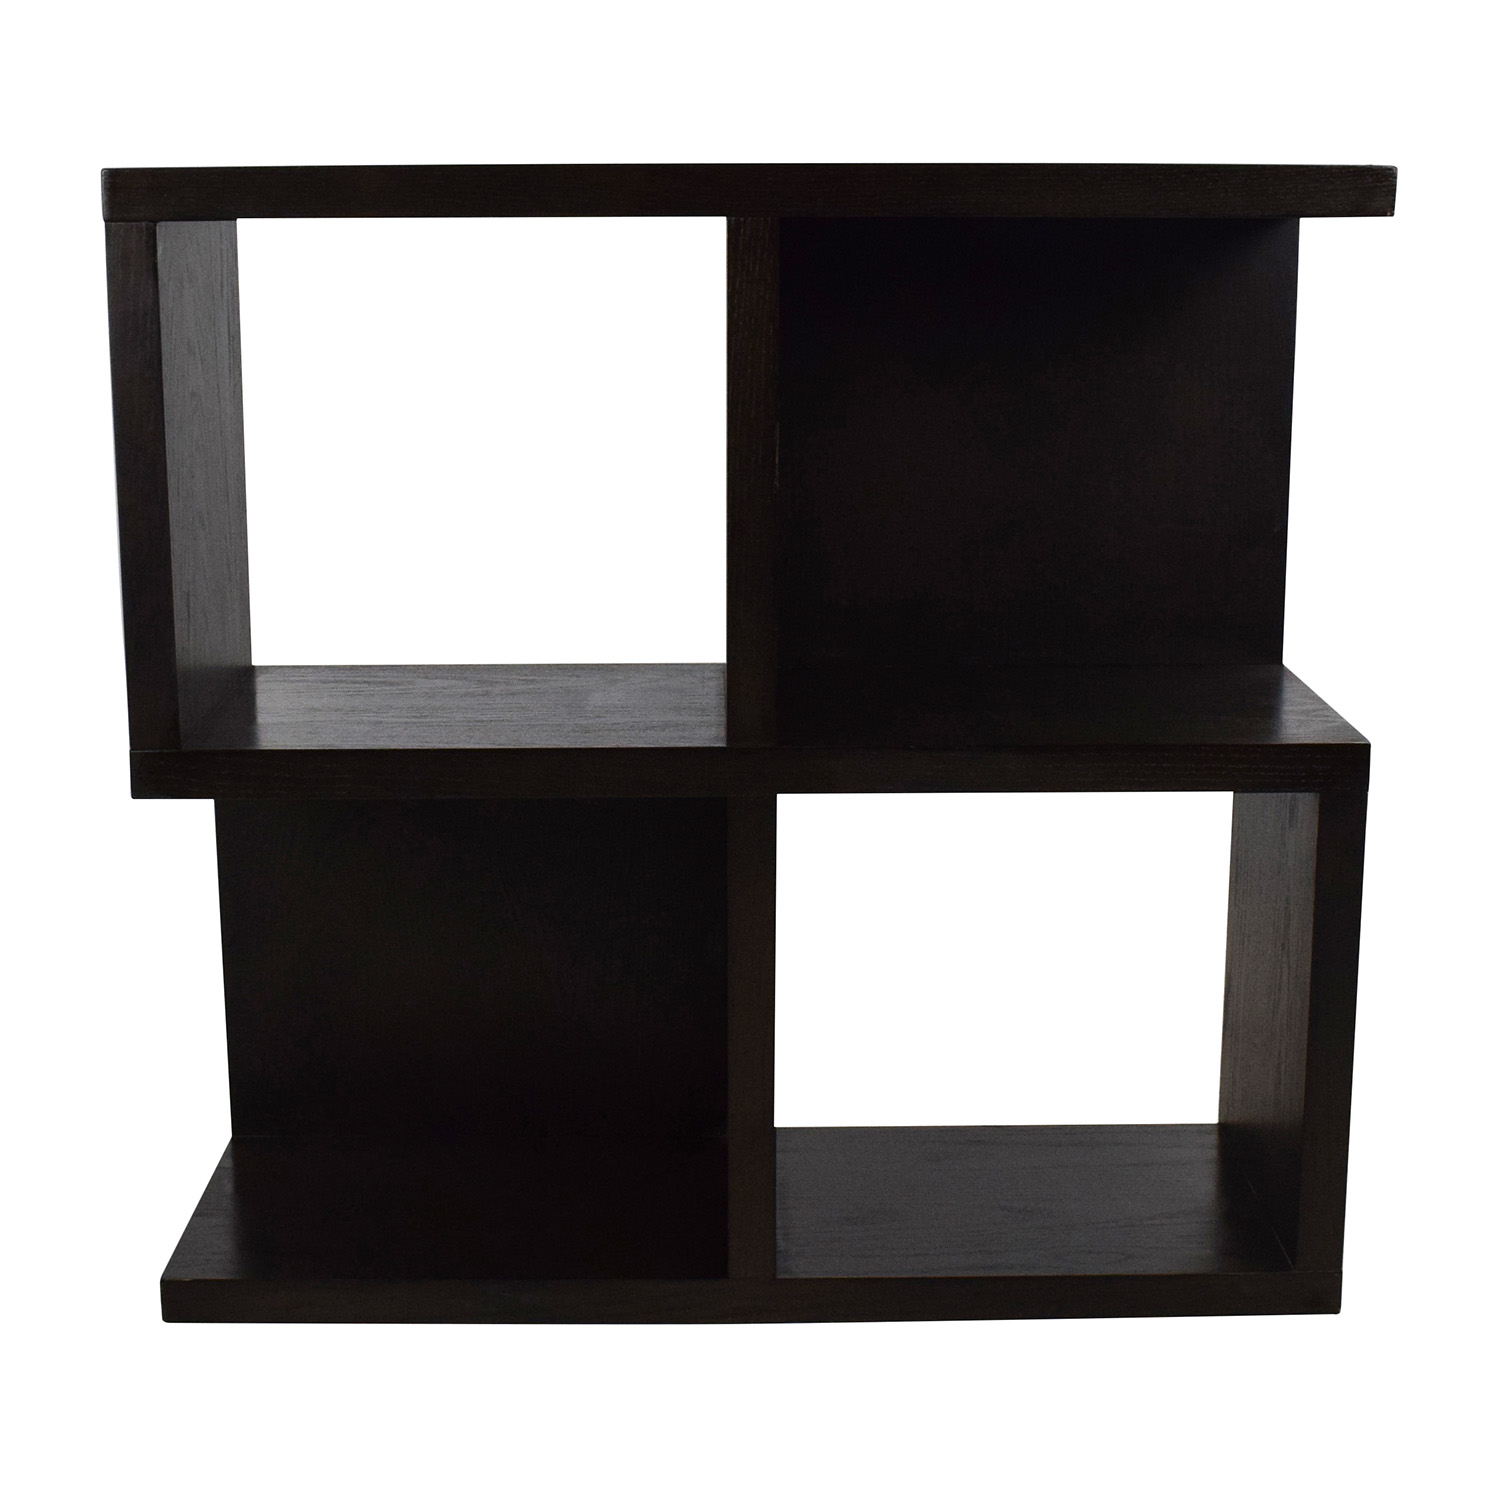 West Elm West Elm Cubic Checkers Bookcase price